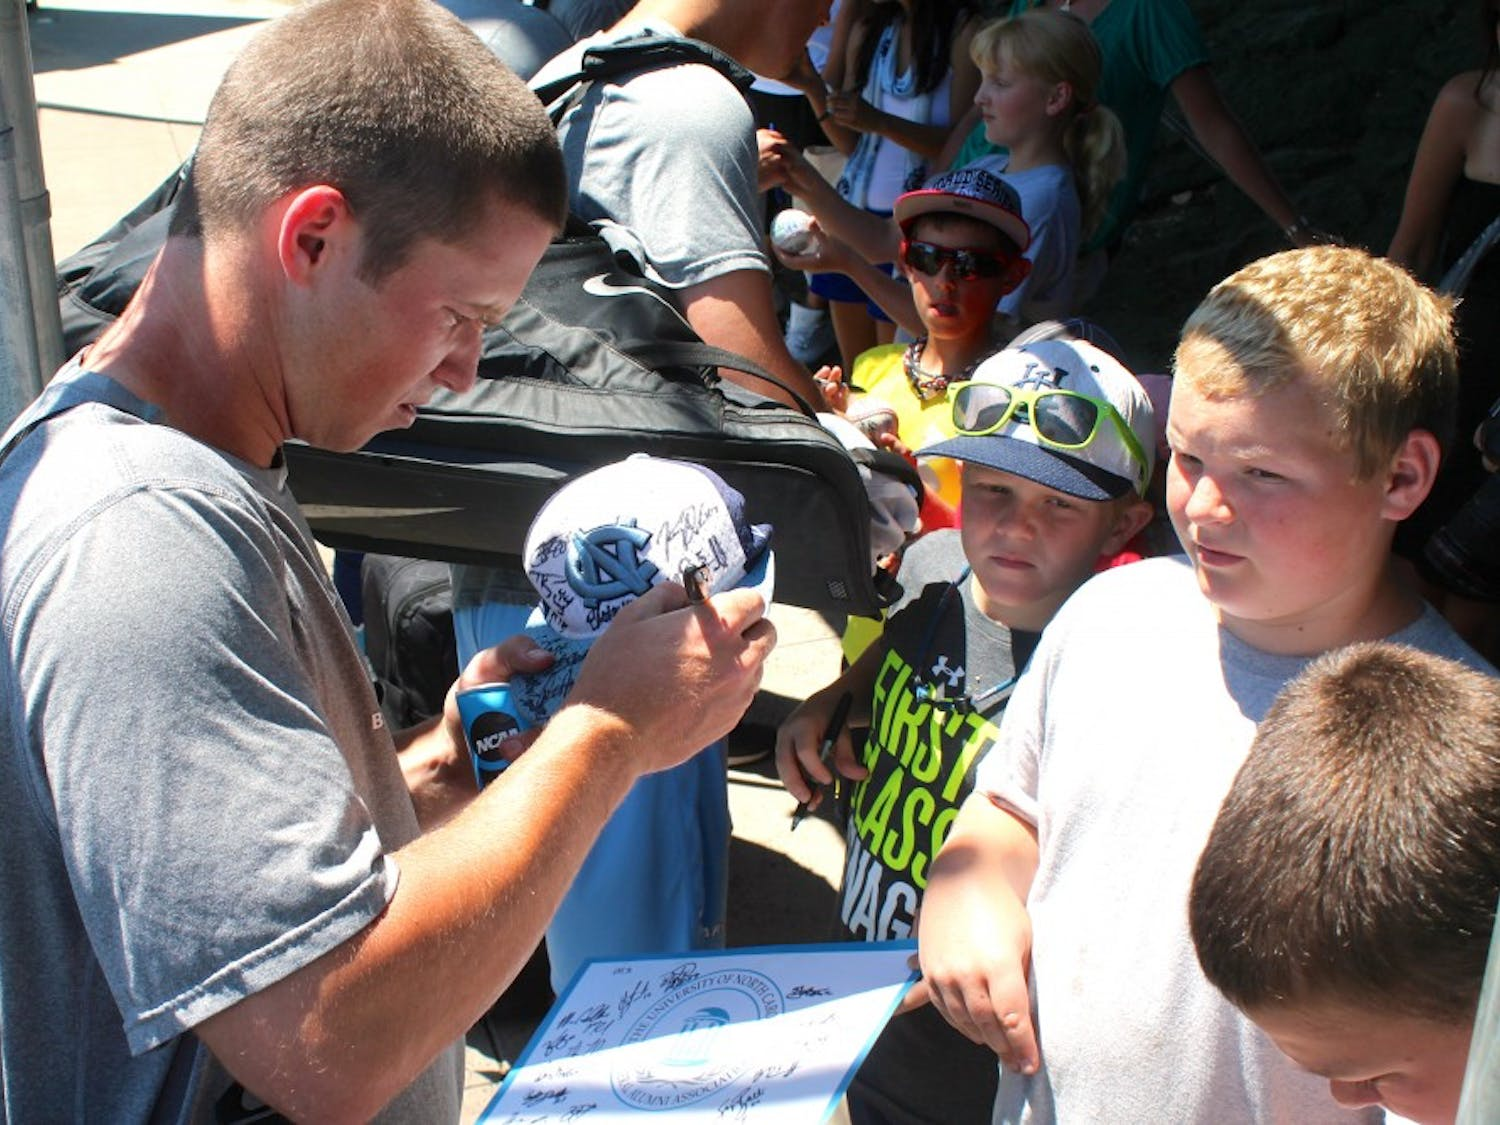 Outfielder Parks Jordan signs autographs for waiting fans after Monday's practice at Creighton's baseball field.